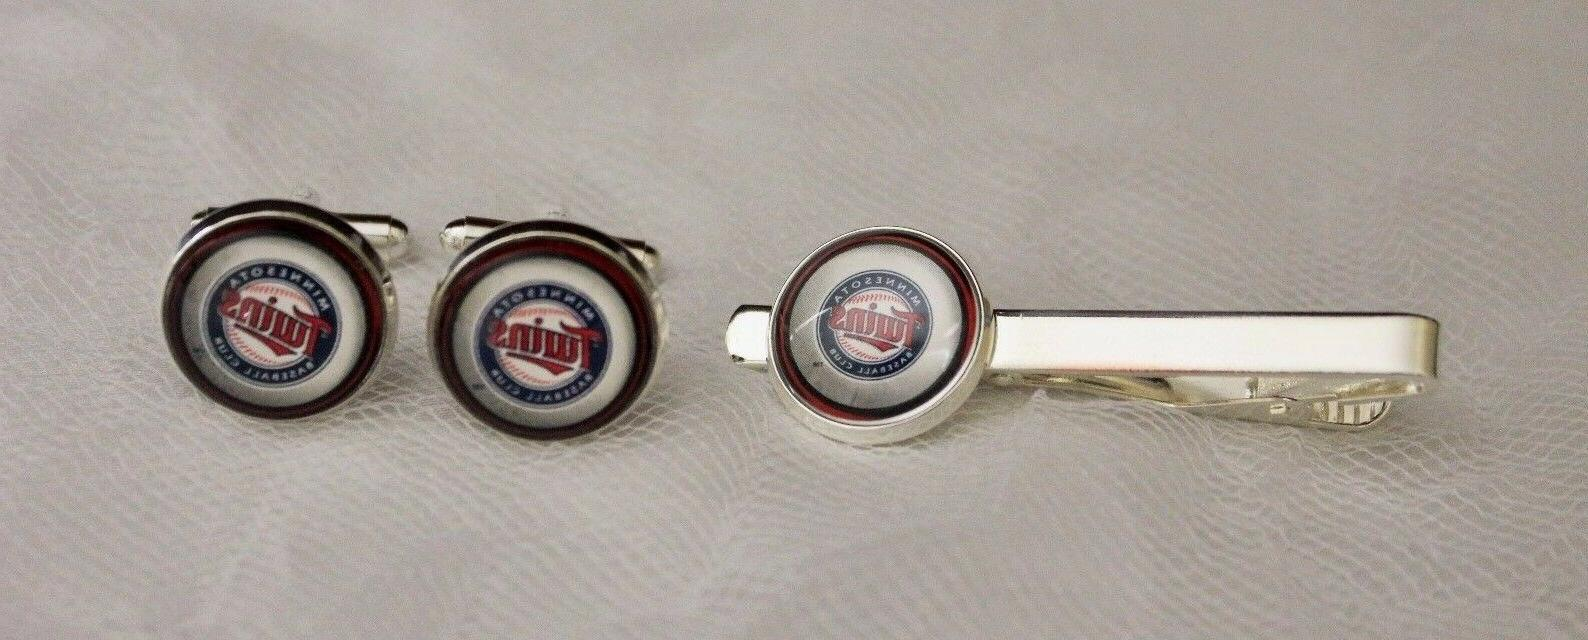 minnesota twins cuff links and tie clip